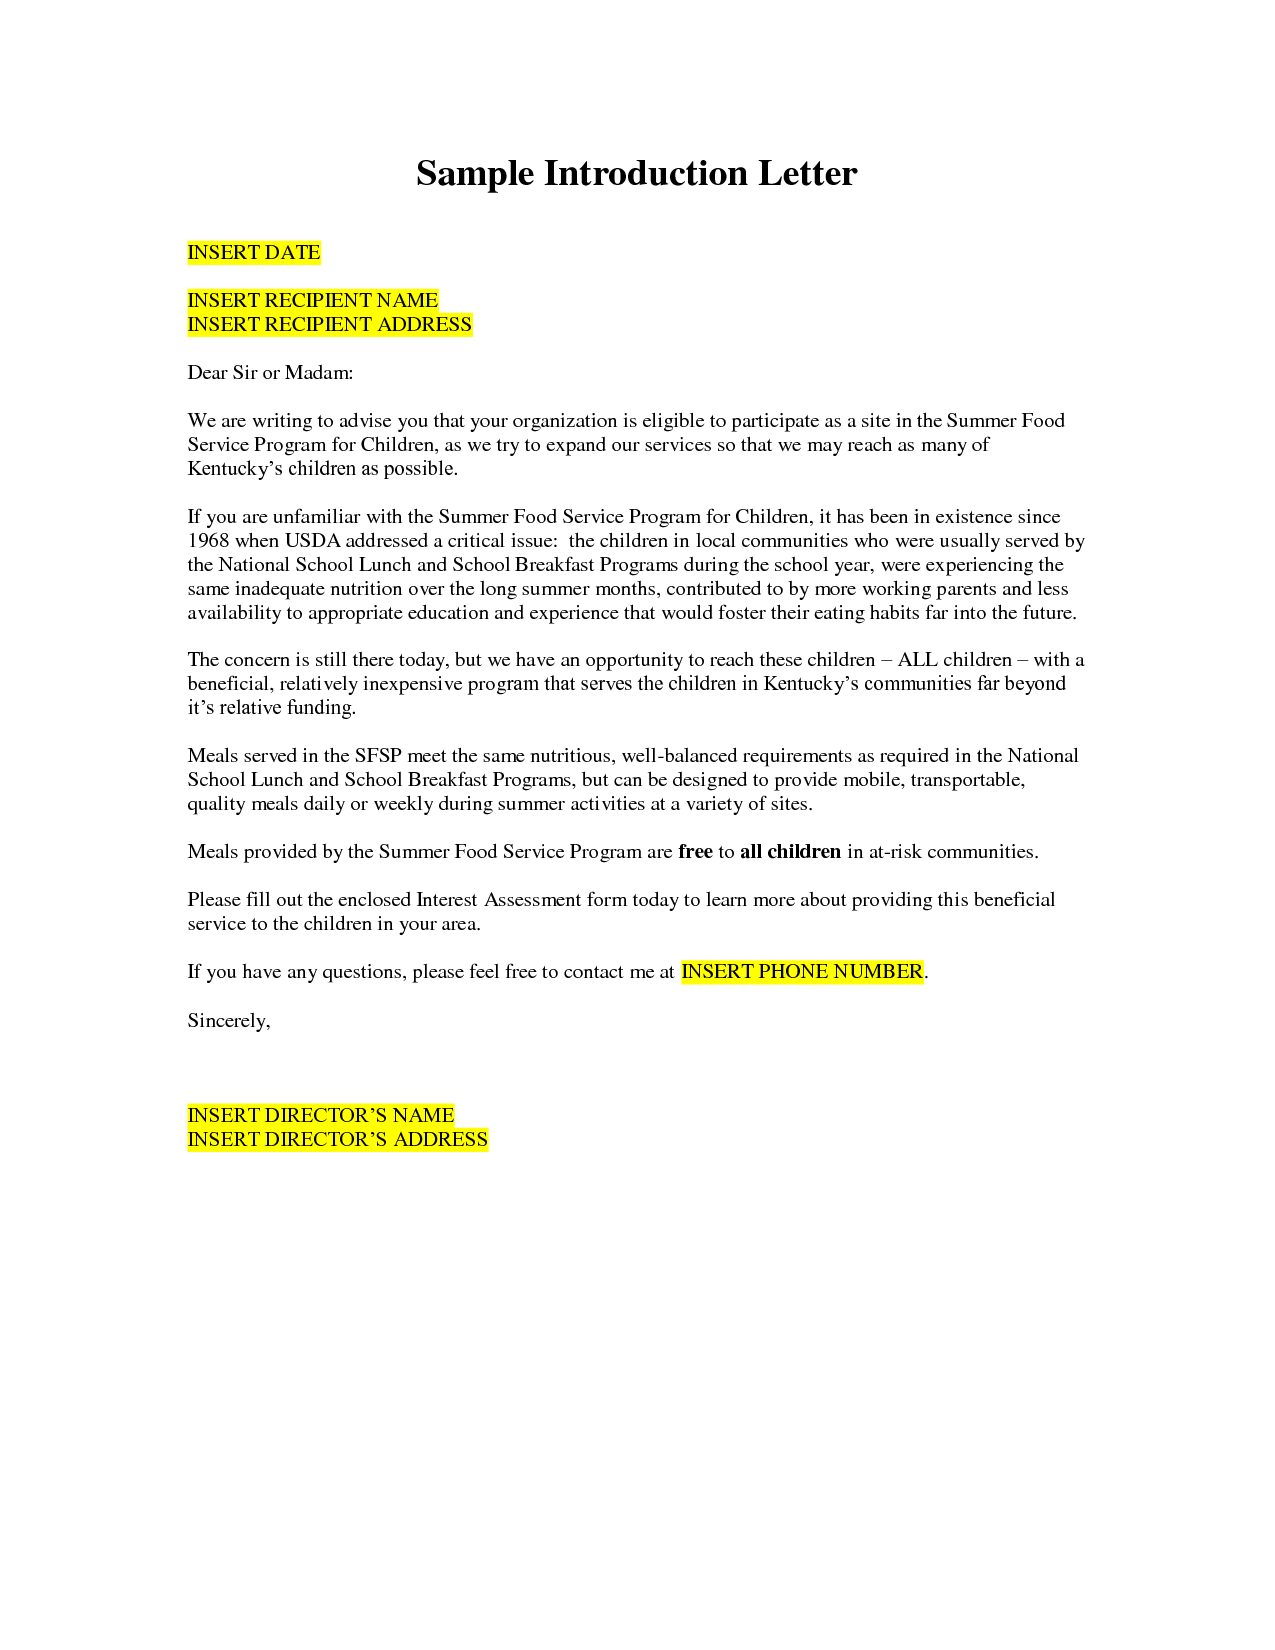 How To Write A Business Introduction Letter Example Gallery